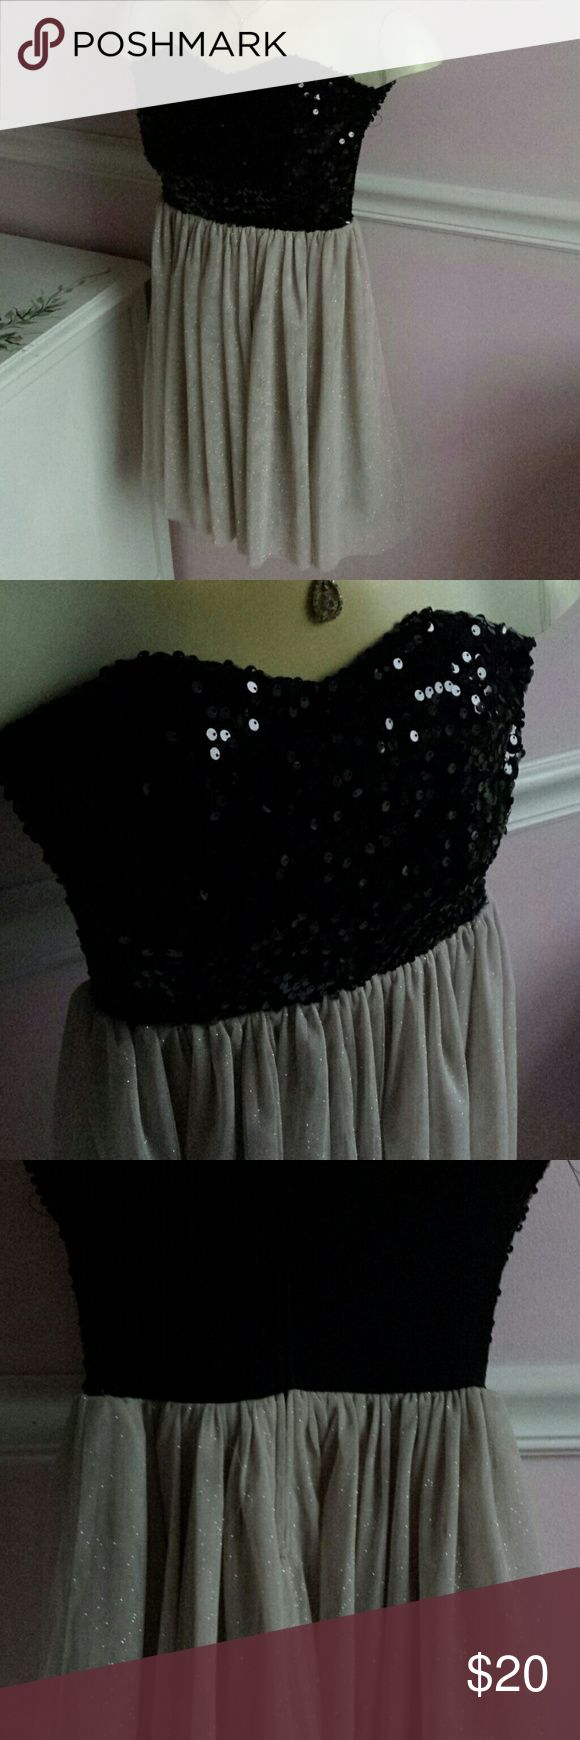 Black sequin and gold formal dress Black sequin formal dress by Delia's. Sequins are only on the front. Skirt is gold and with gold sparkles. Cute, short length. Dresses Mini